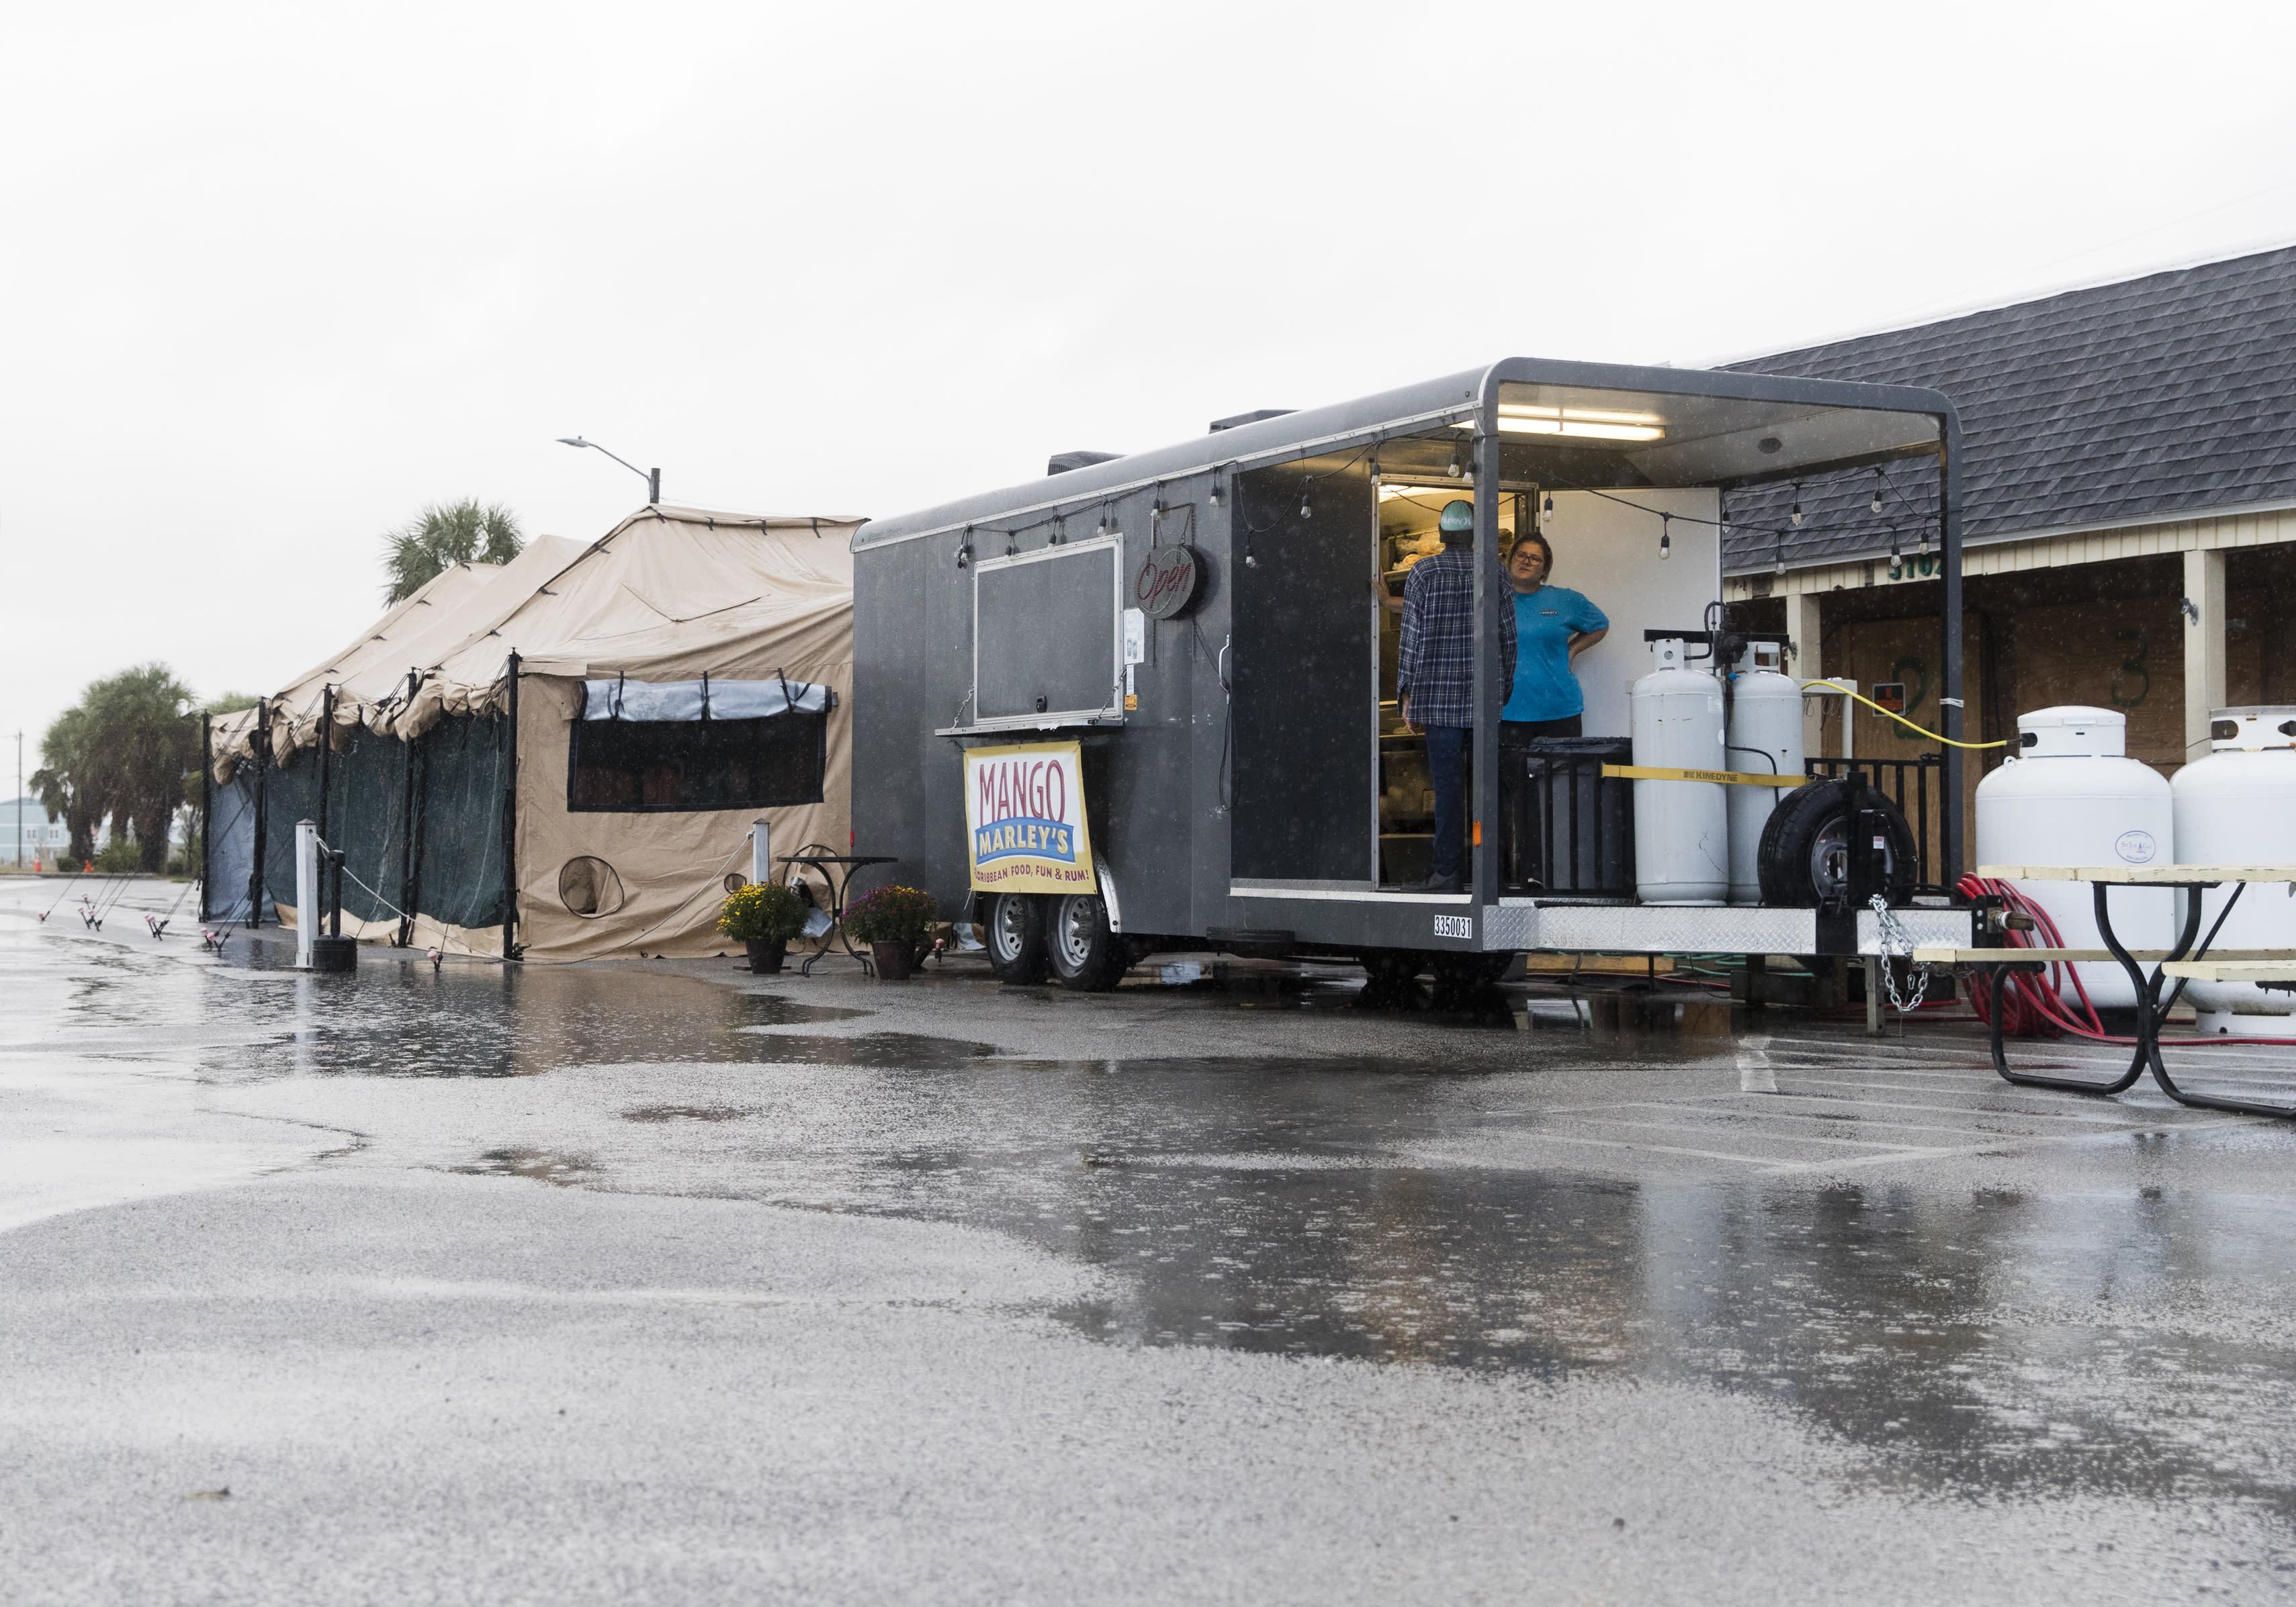 Mango Marley's opens after Tropical Storm Nestor passed Mexico Beach, Fla. on Saturday, Oct. 19, 2019. Nestor was downgraded Saturday after it spawned a tornado that damaged homes and a school in central Florida but spared an area of the Panhandle devastated one year ago by Hurricane Michael. (Joshua Boucher/News Herald via AP)